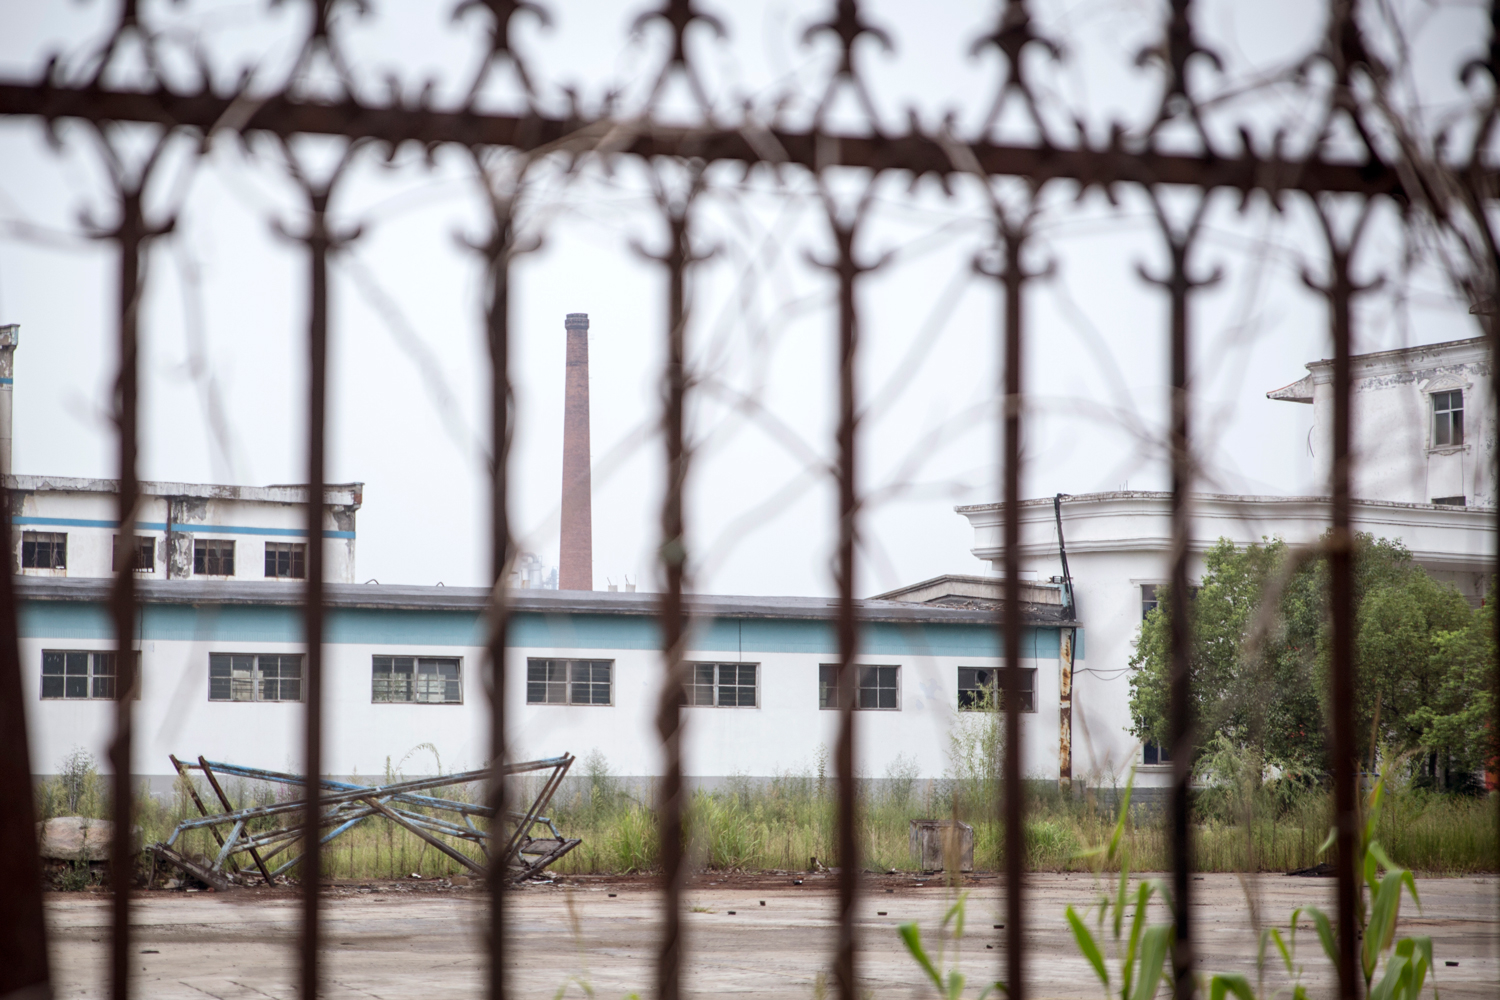 Factories lie abandoned in Xichuan. Xichuan Mayor Pei Jianjun says that 238 factories in the area, many of them brick or paper factories, have been shut down.